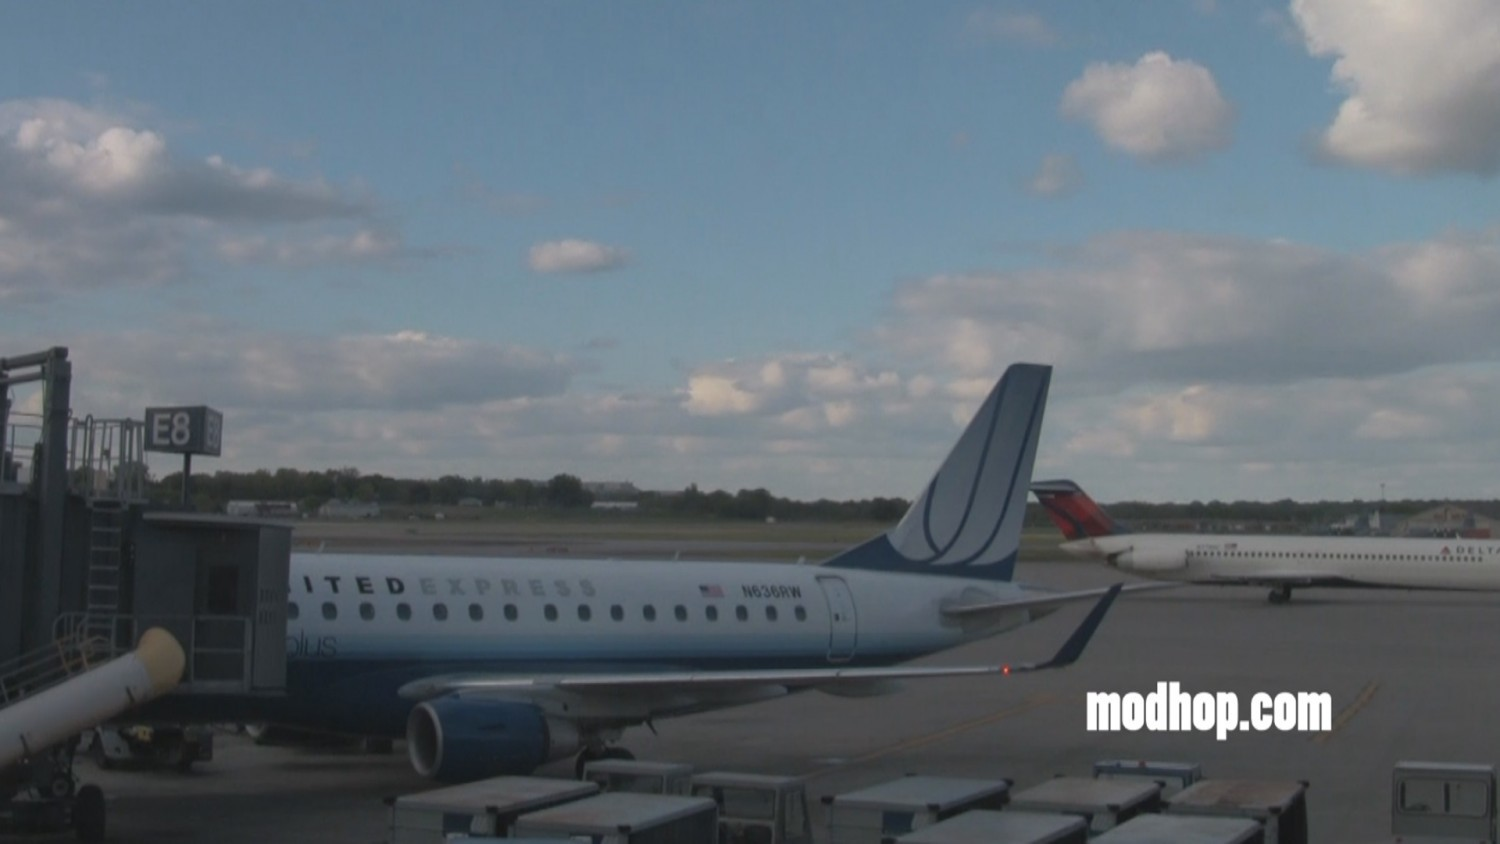 United Express flight boarding at MSP